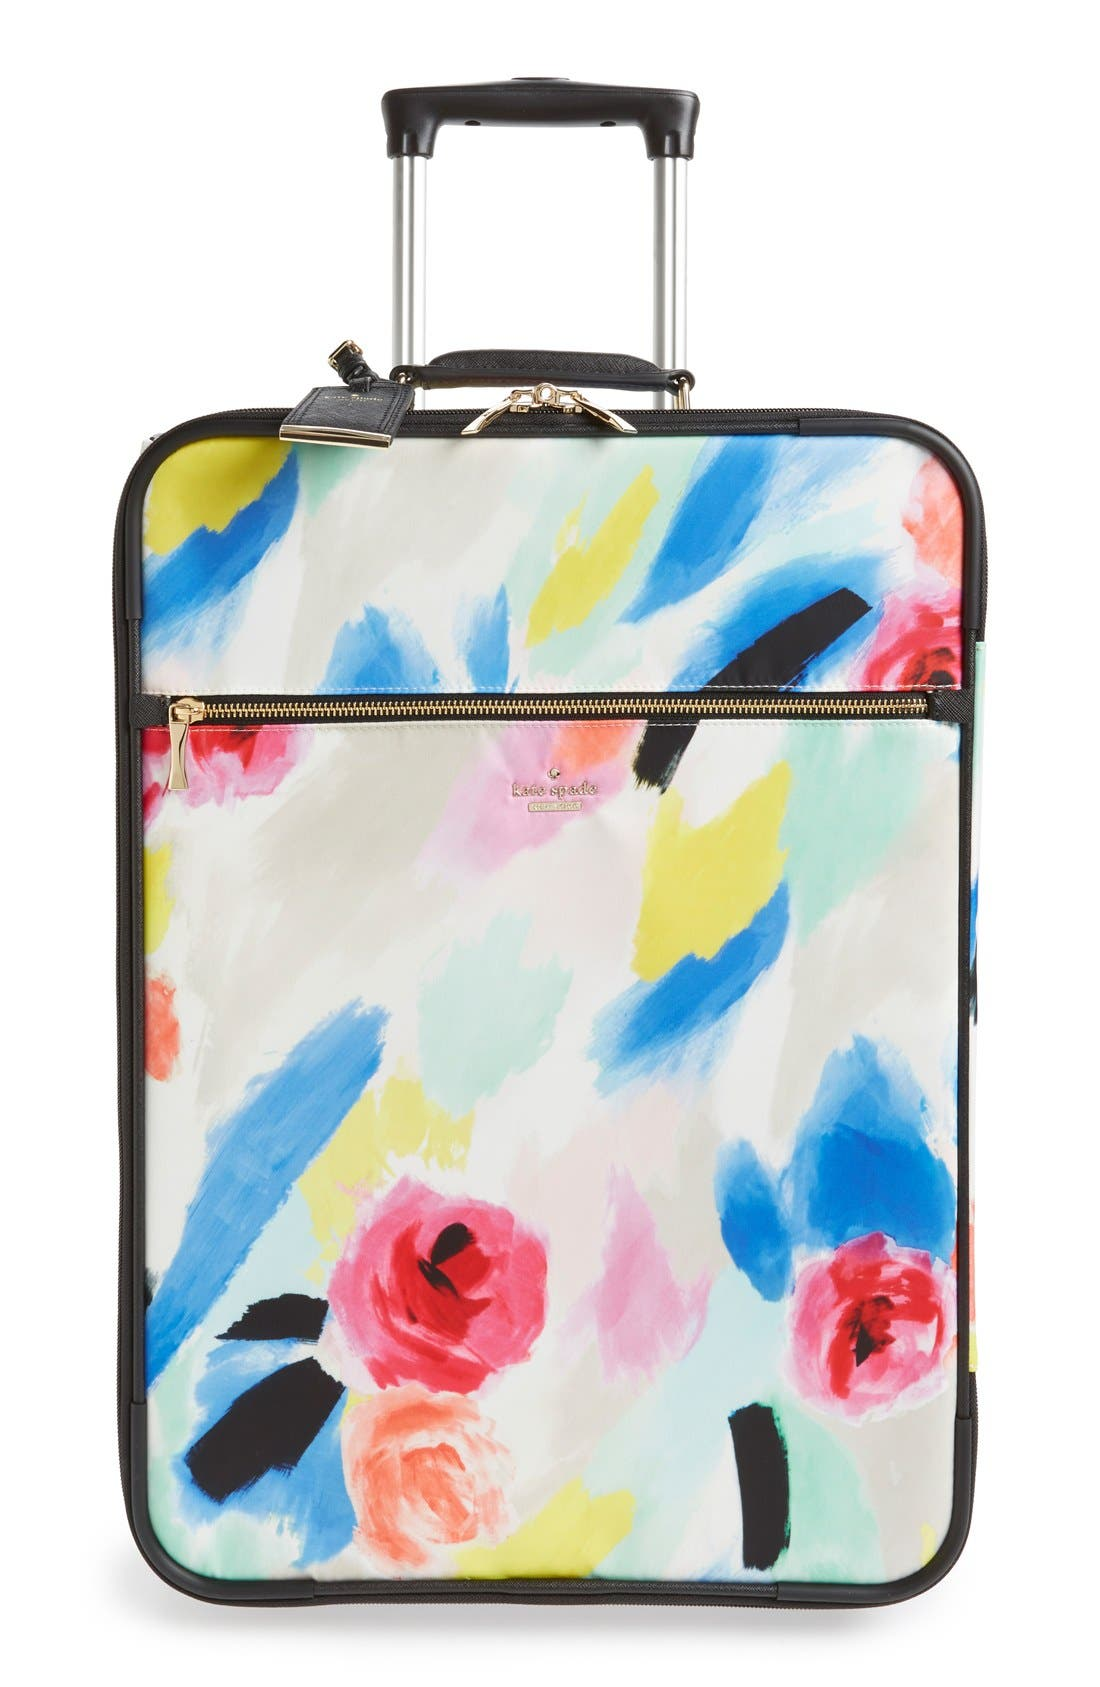 Main Image - kate spade new york 'classic' nylon international two-wheel carry-on suitcase (20 inch)